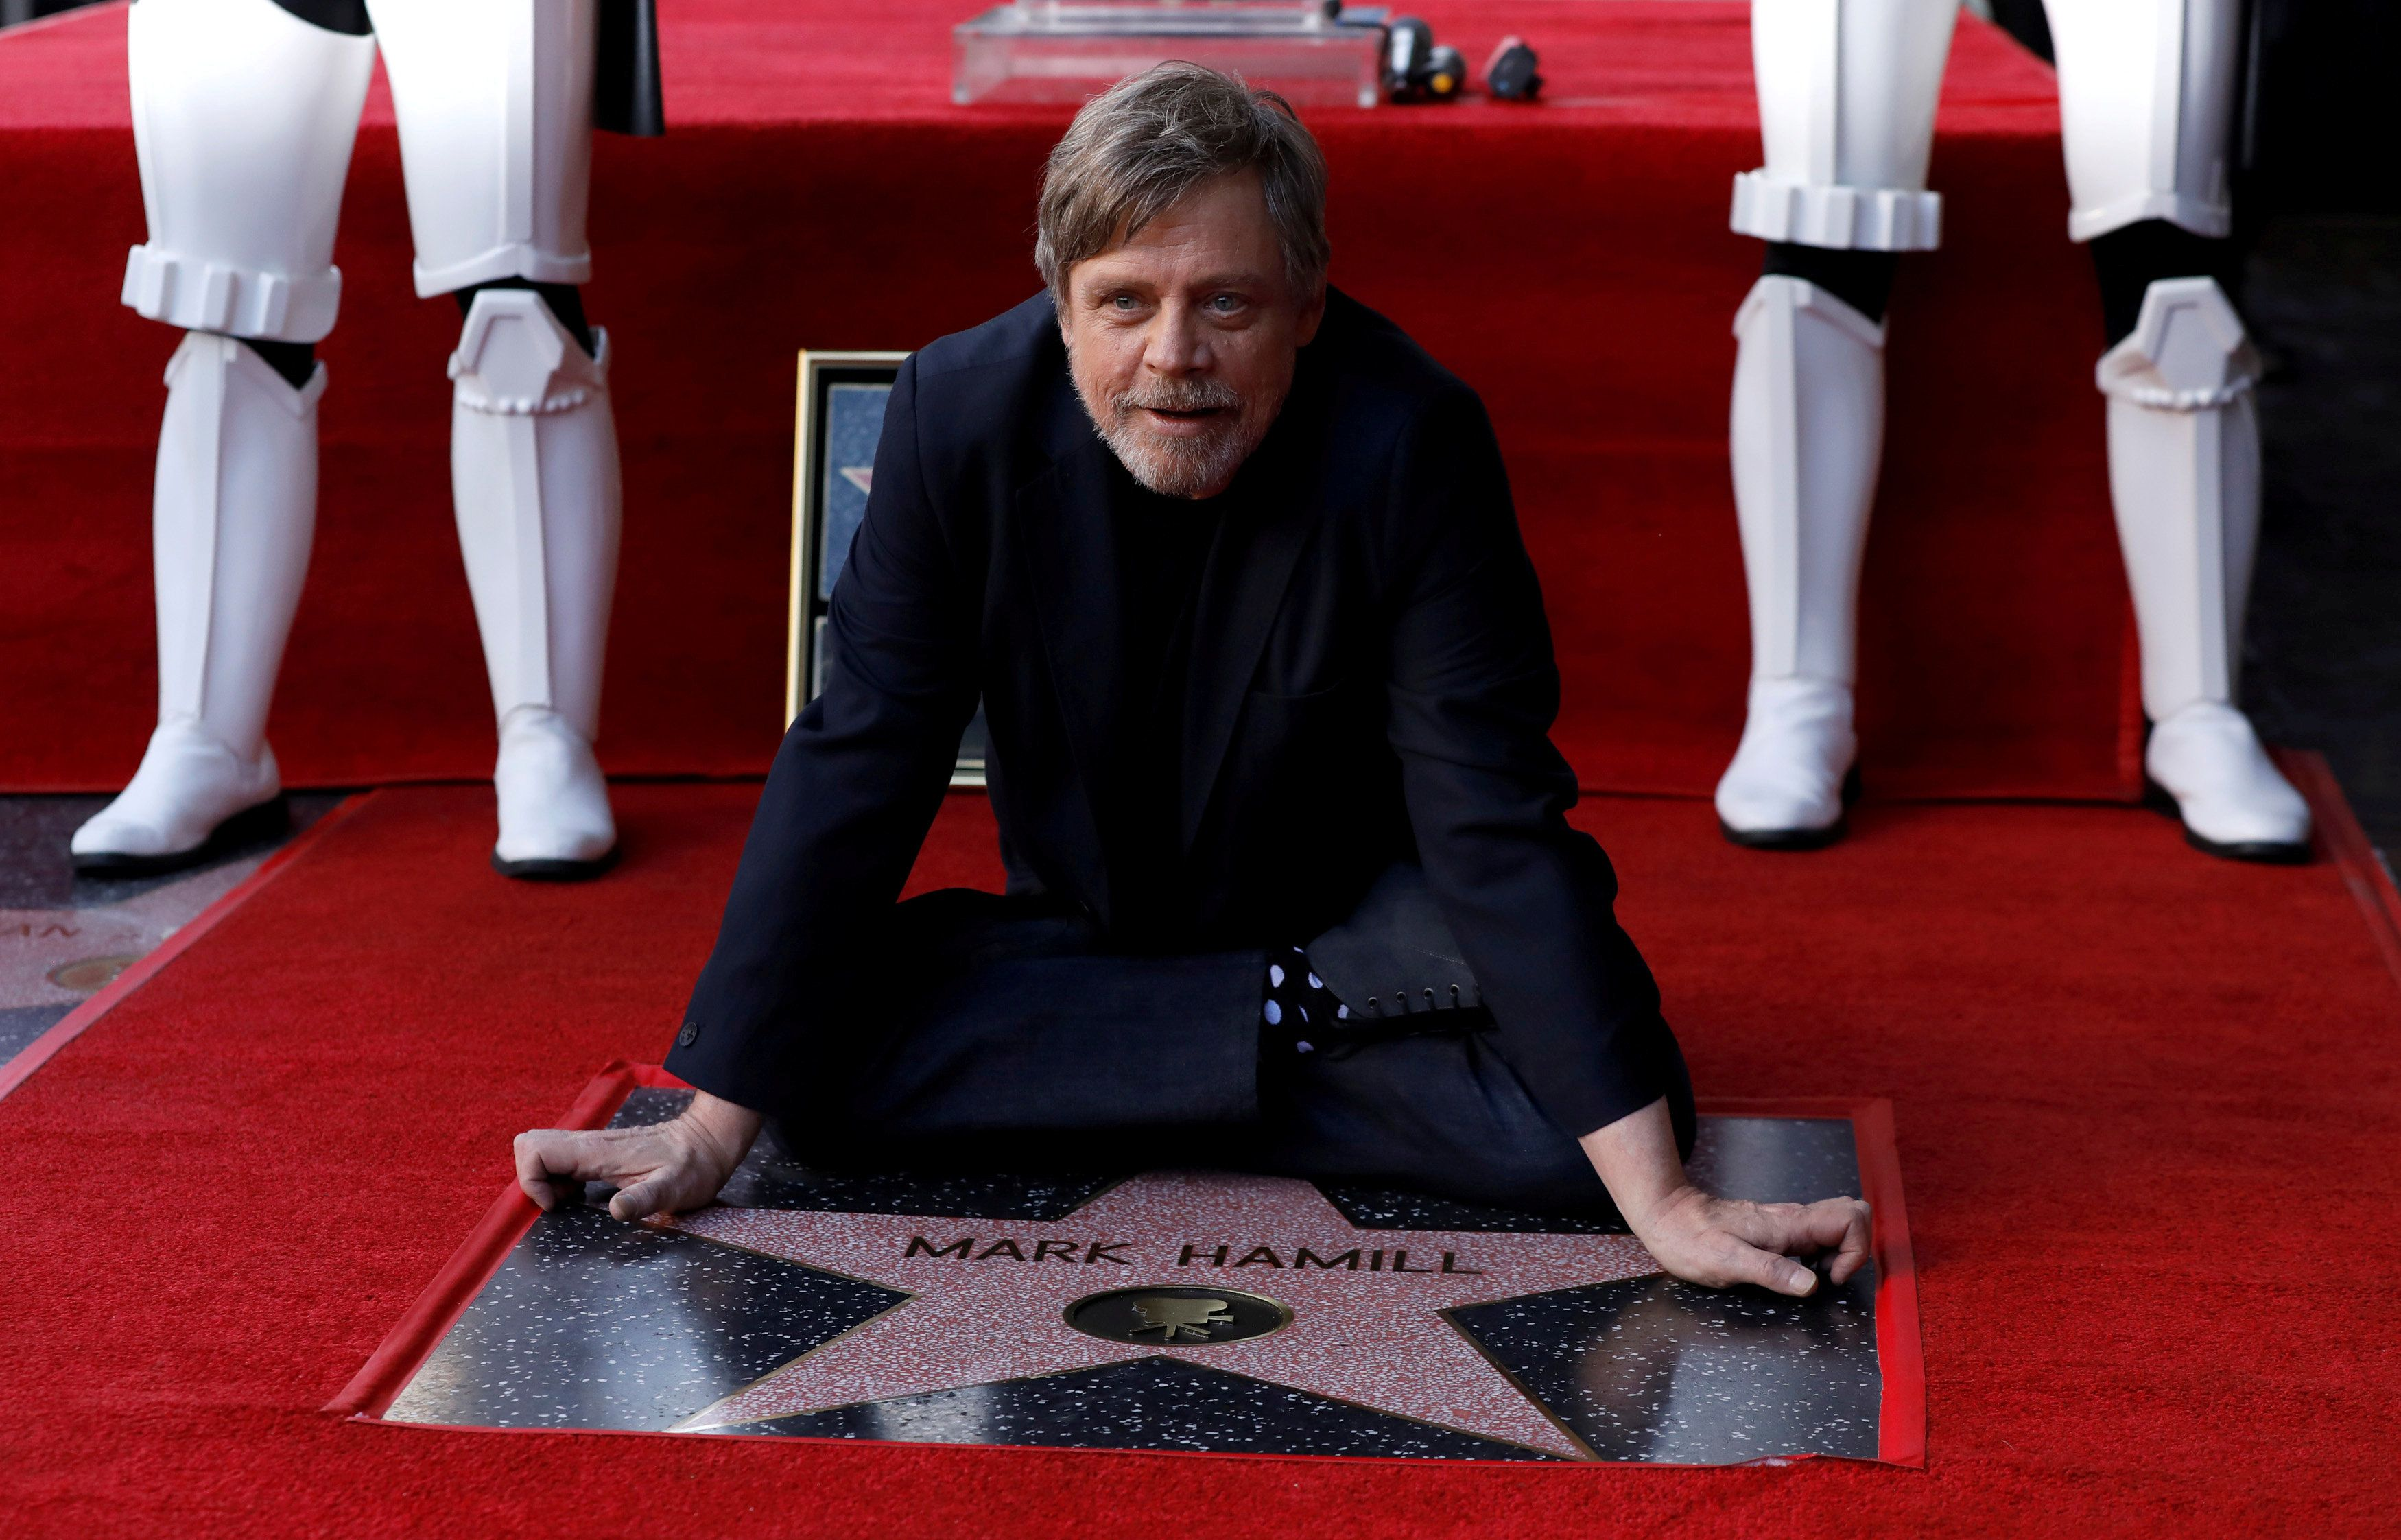 Mark Hamill reveals the fate George Lucas originally intended for Luke Skywalker